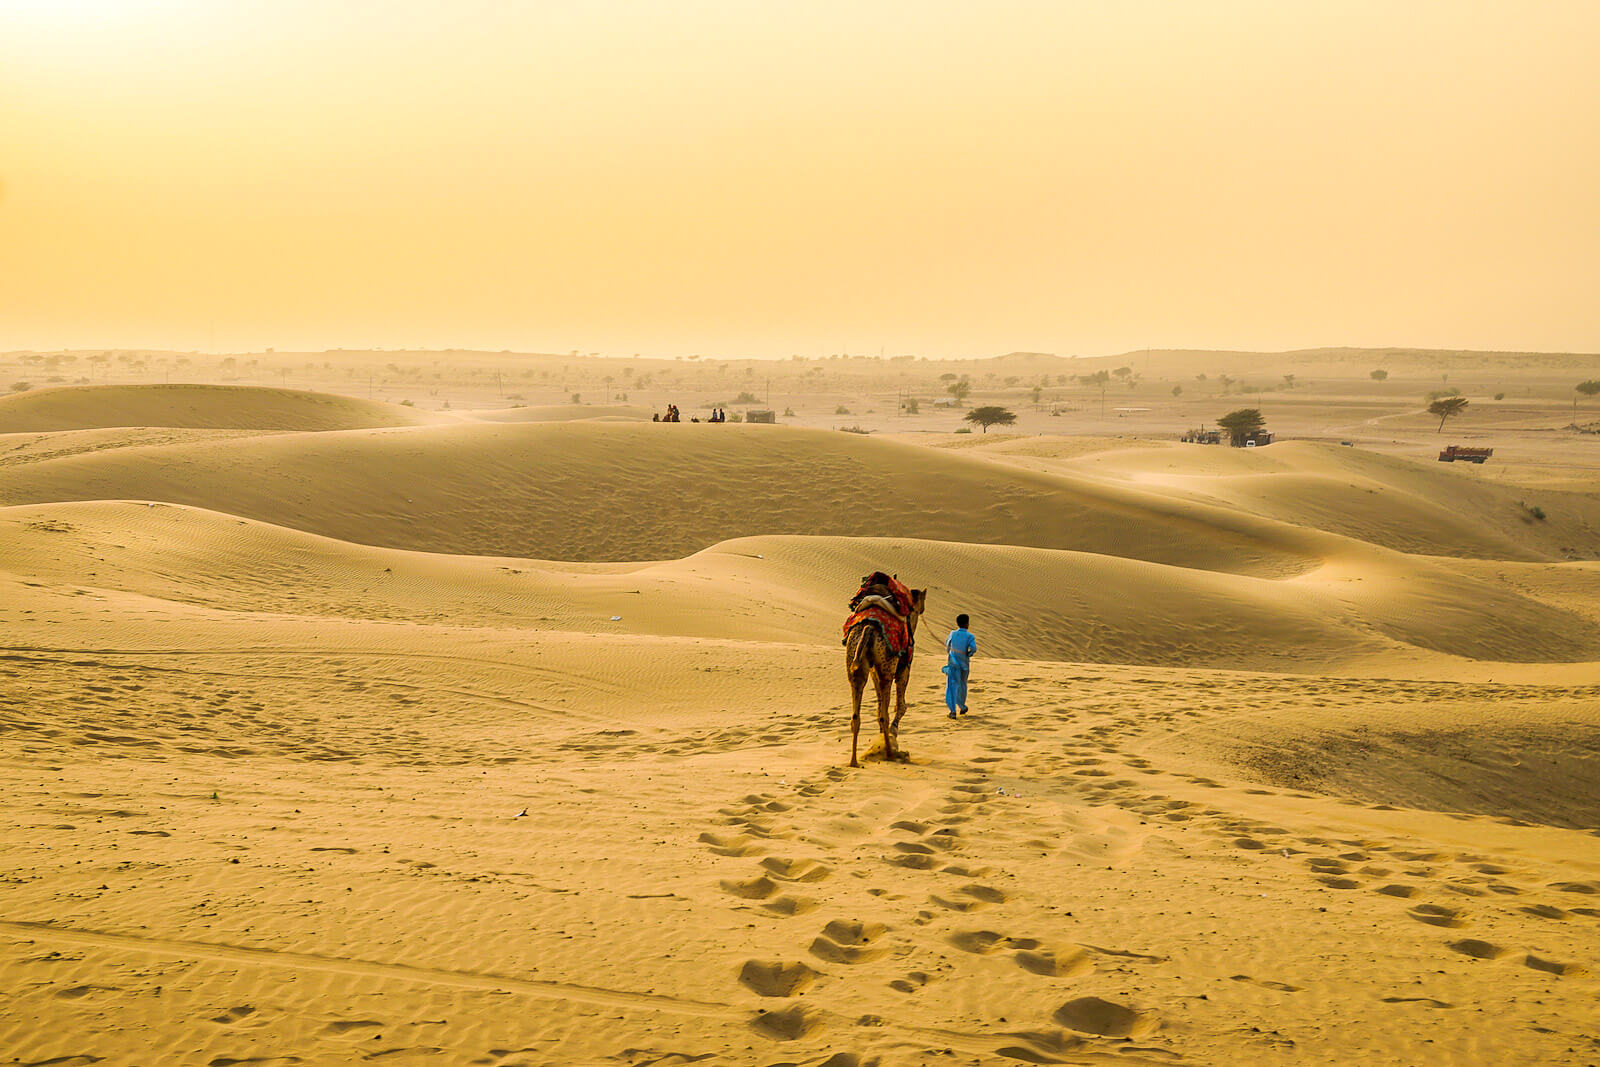 Jaisalmer and the Thar Desert, a stop in the Palace of Wheels, one of the Luxury Trains of India